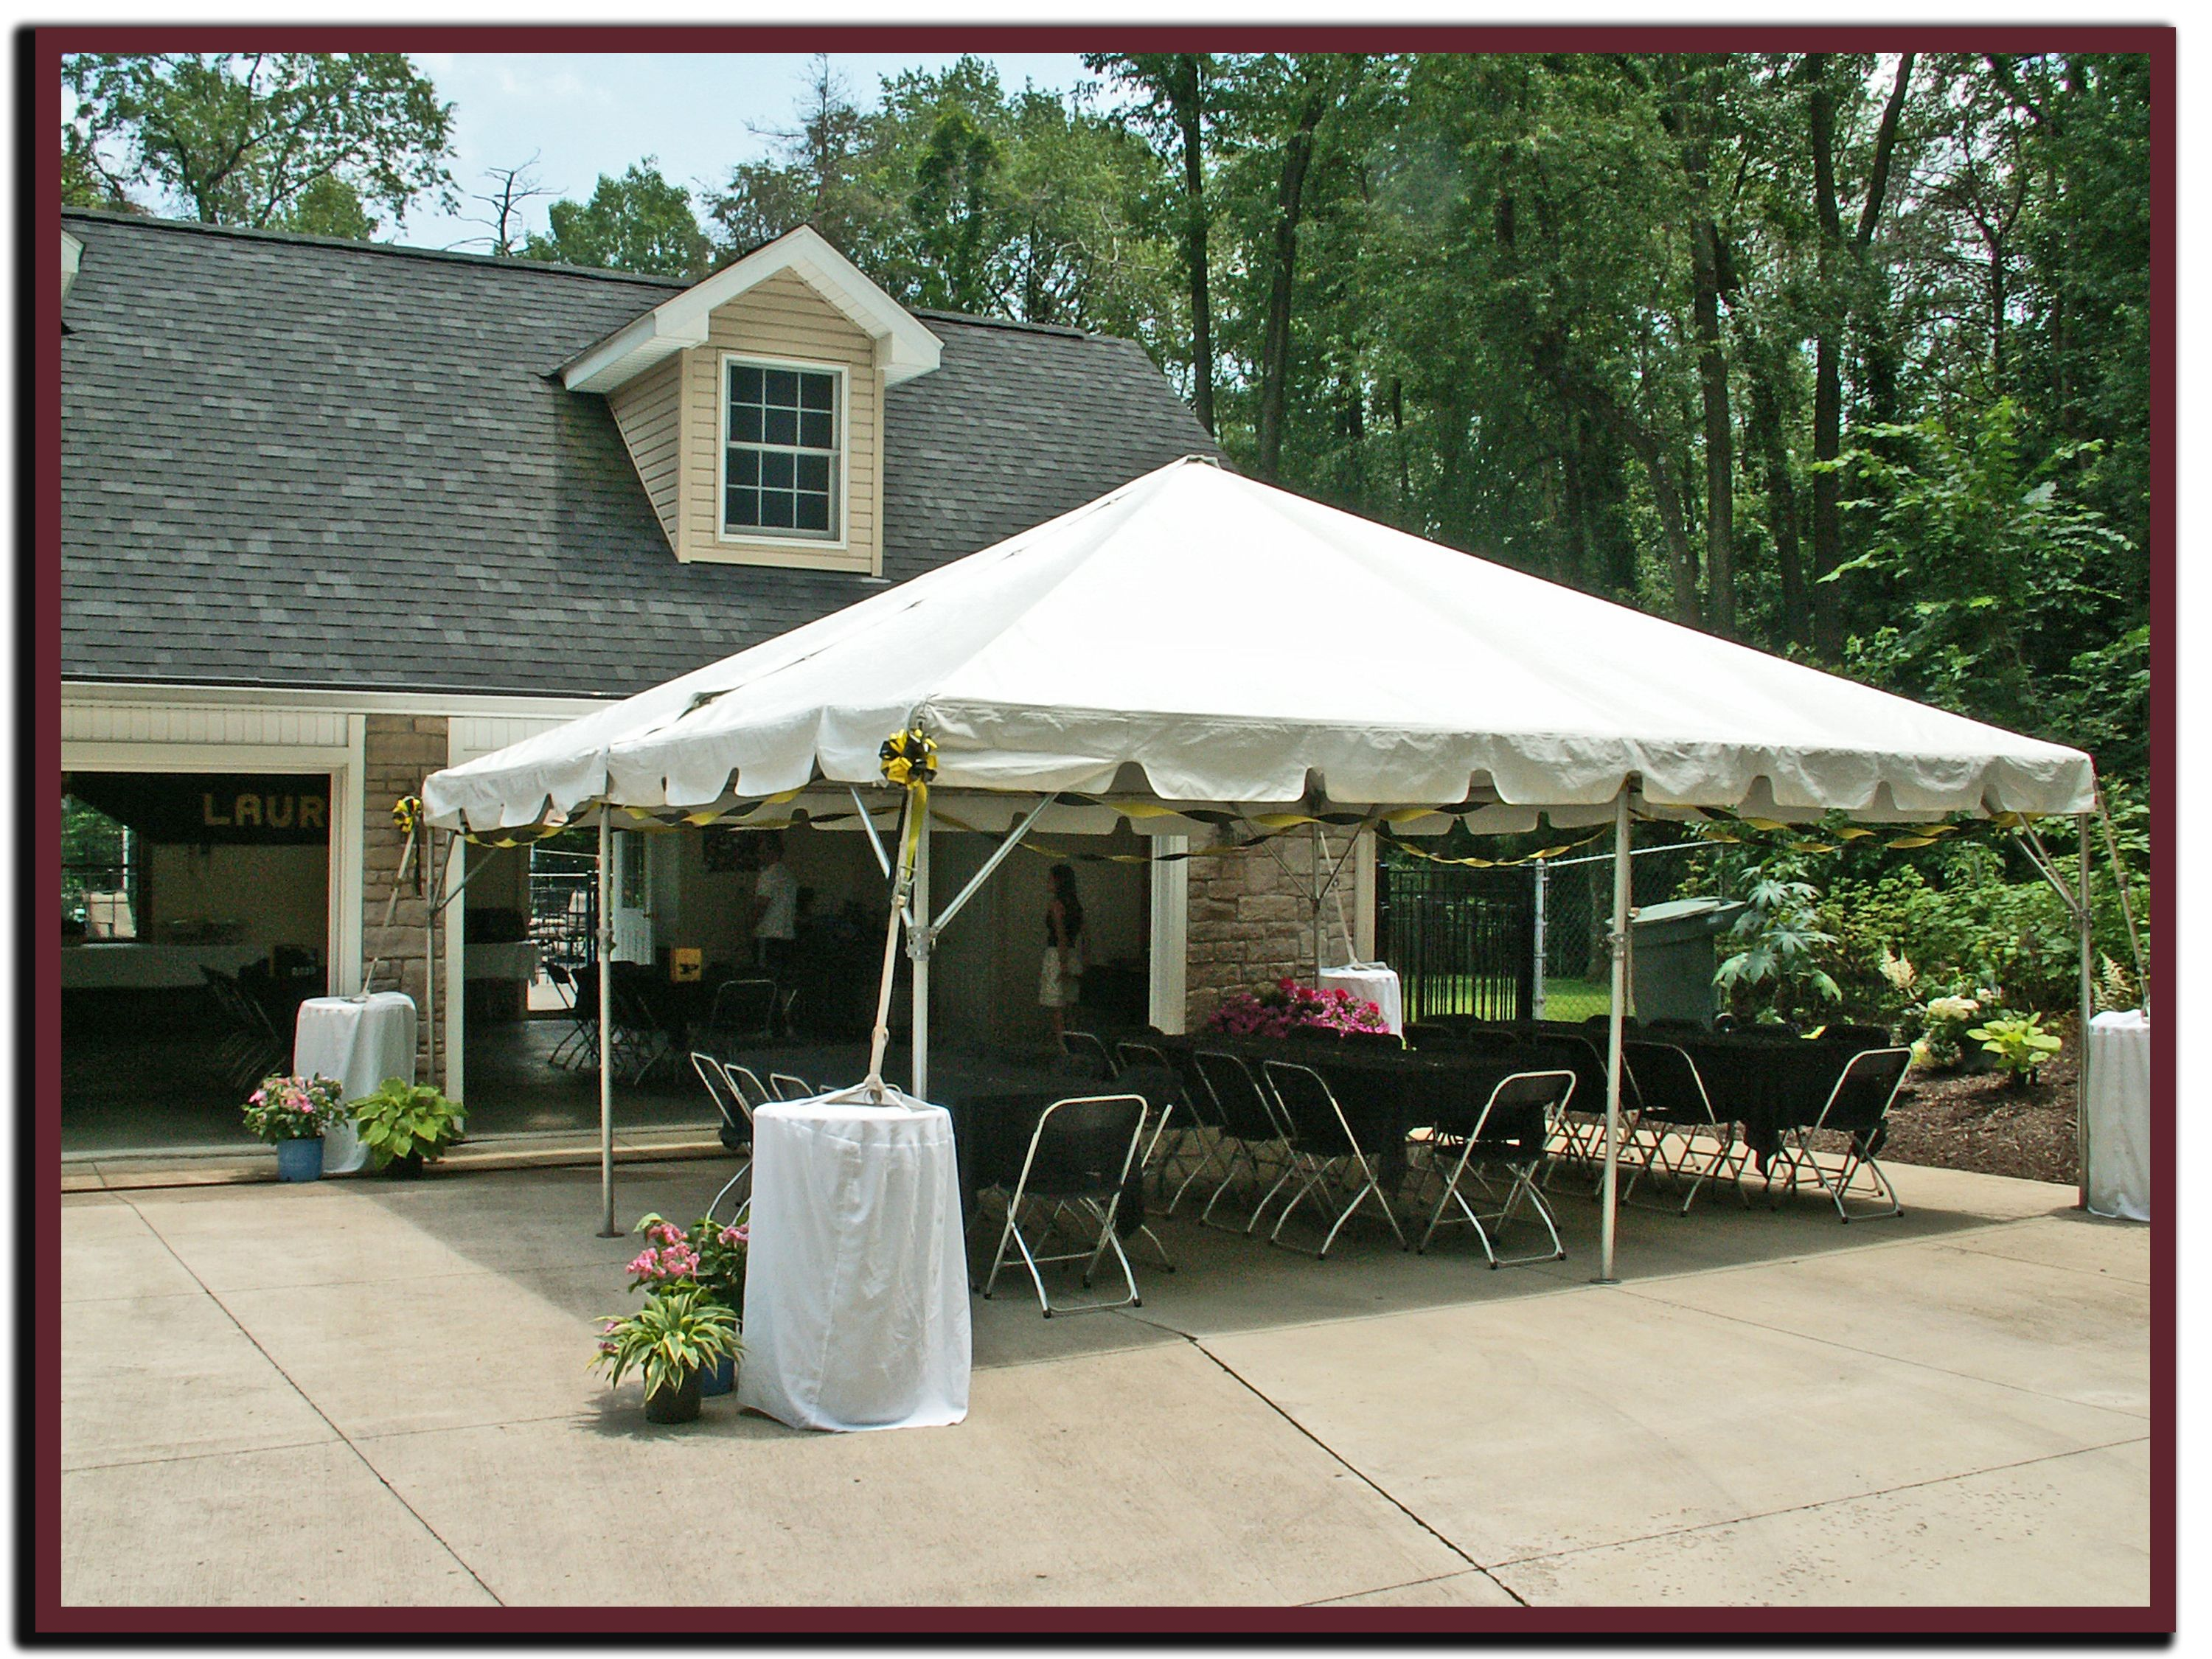 Add some shade to your driveway with a frame tent